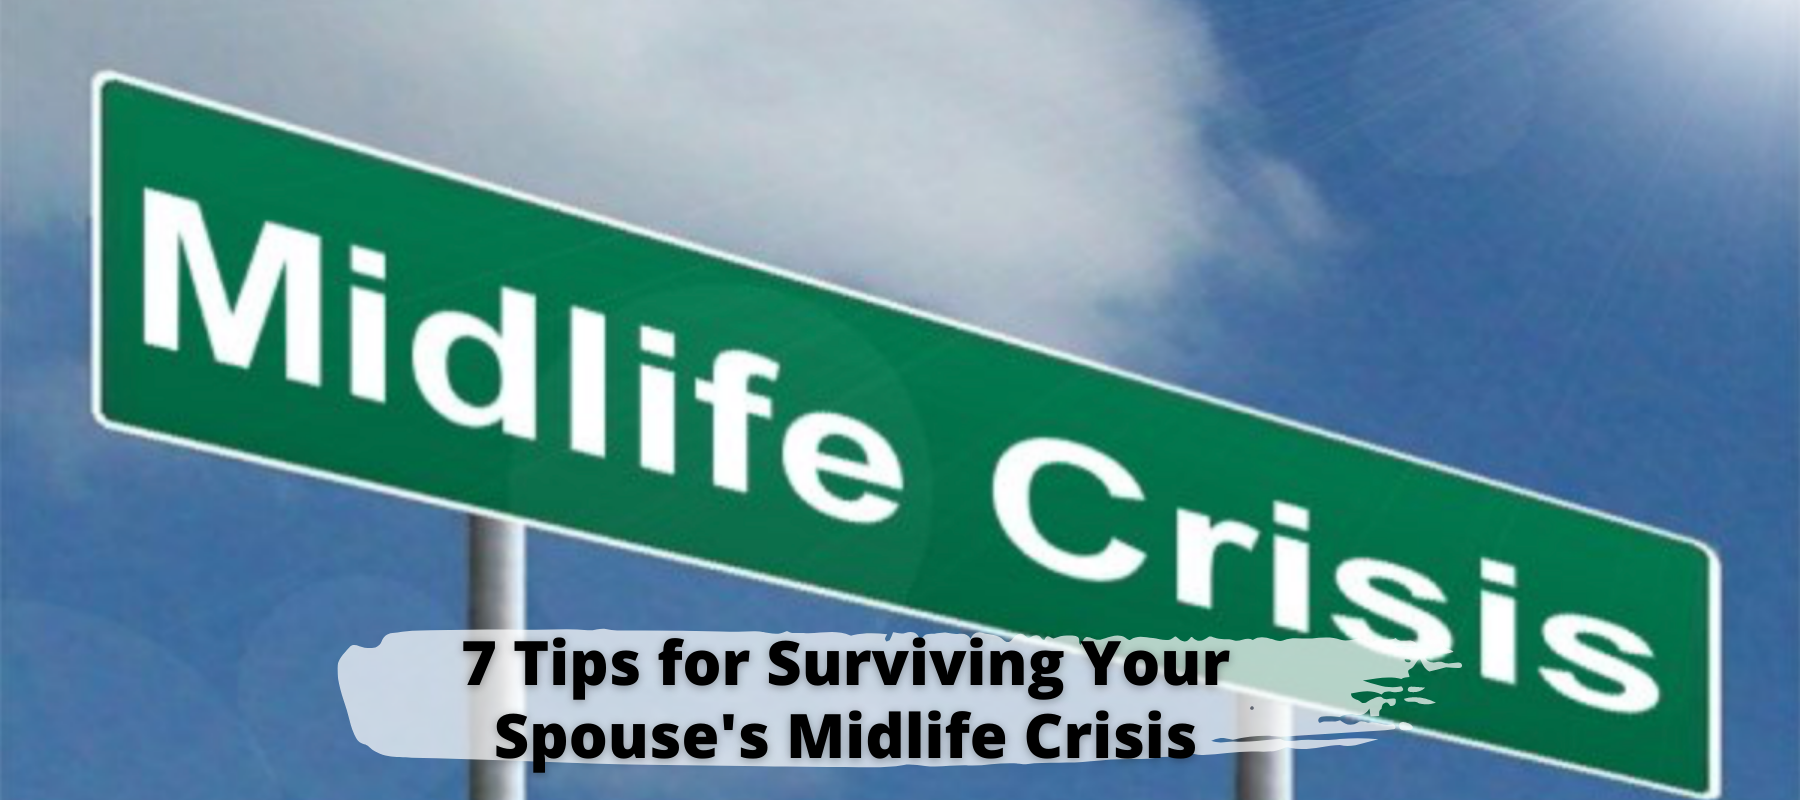 7-tips-for-surviving-spouse-midlife-crisis